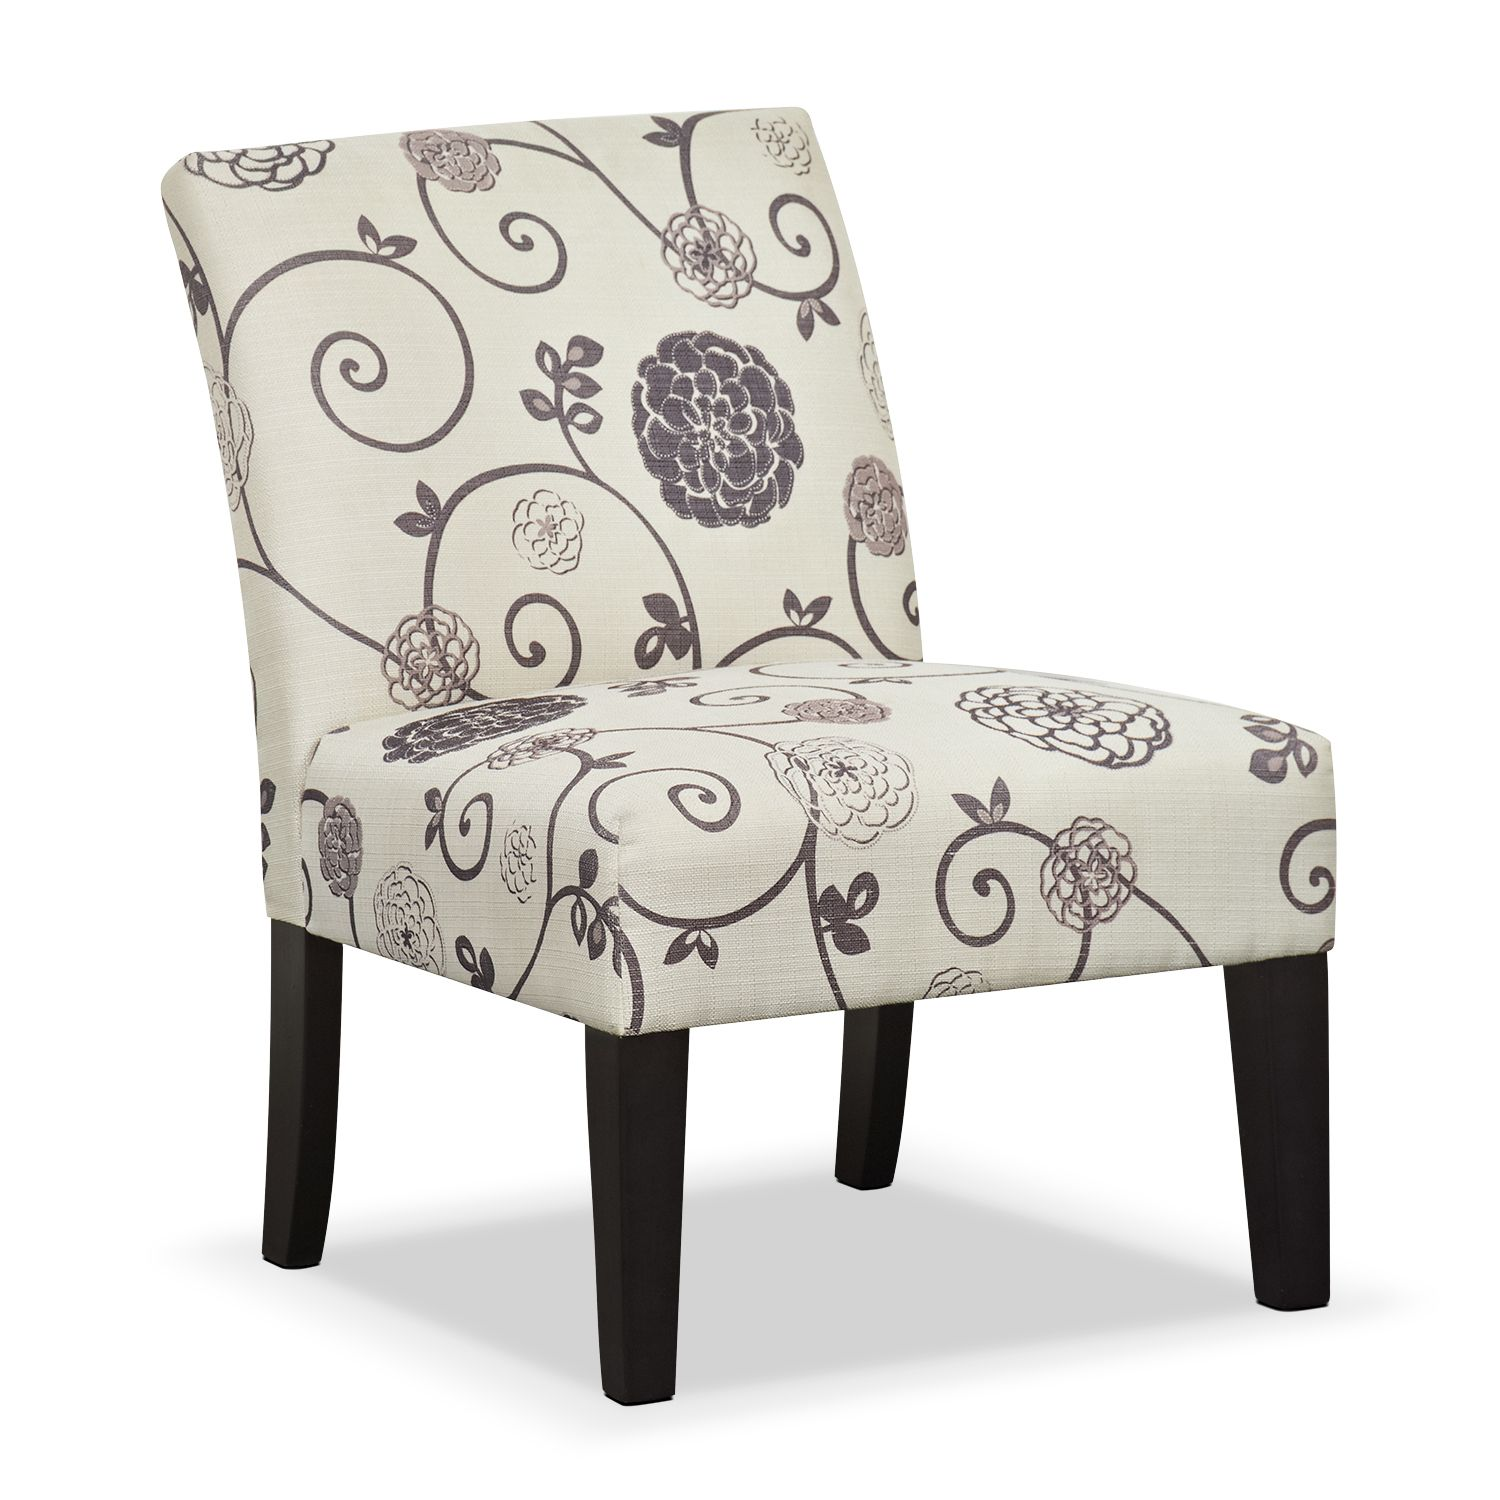 Wylie Upholstered Side Chair - Floral | Side chair, City furniture ...